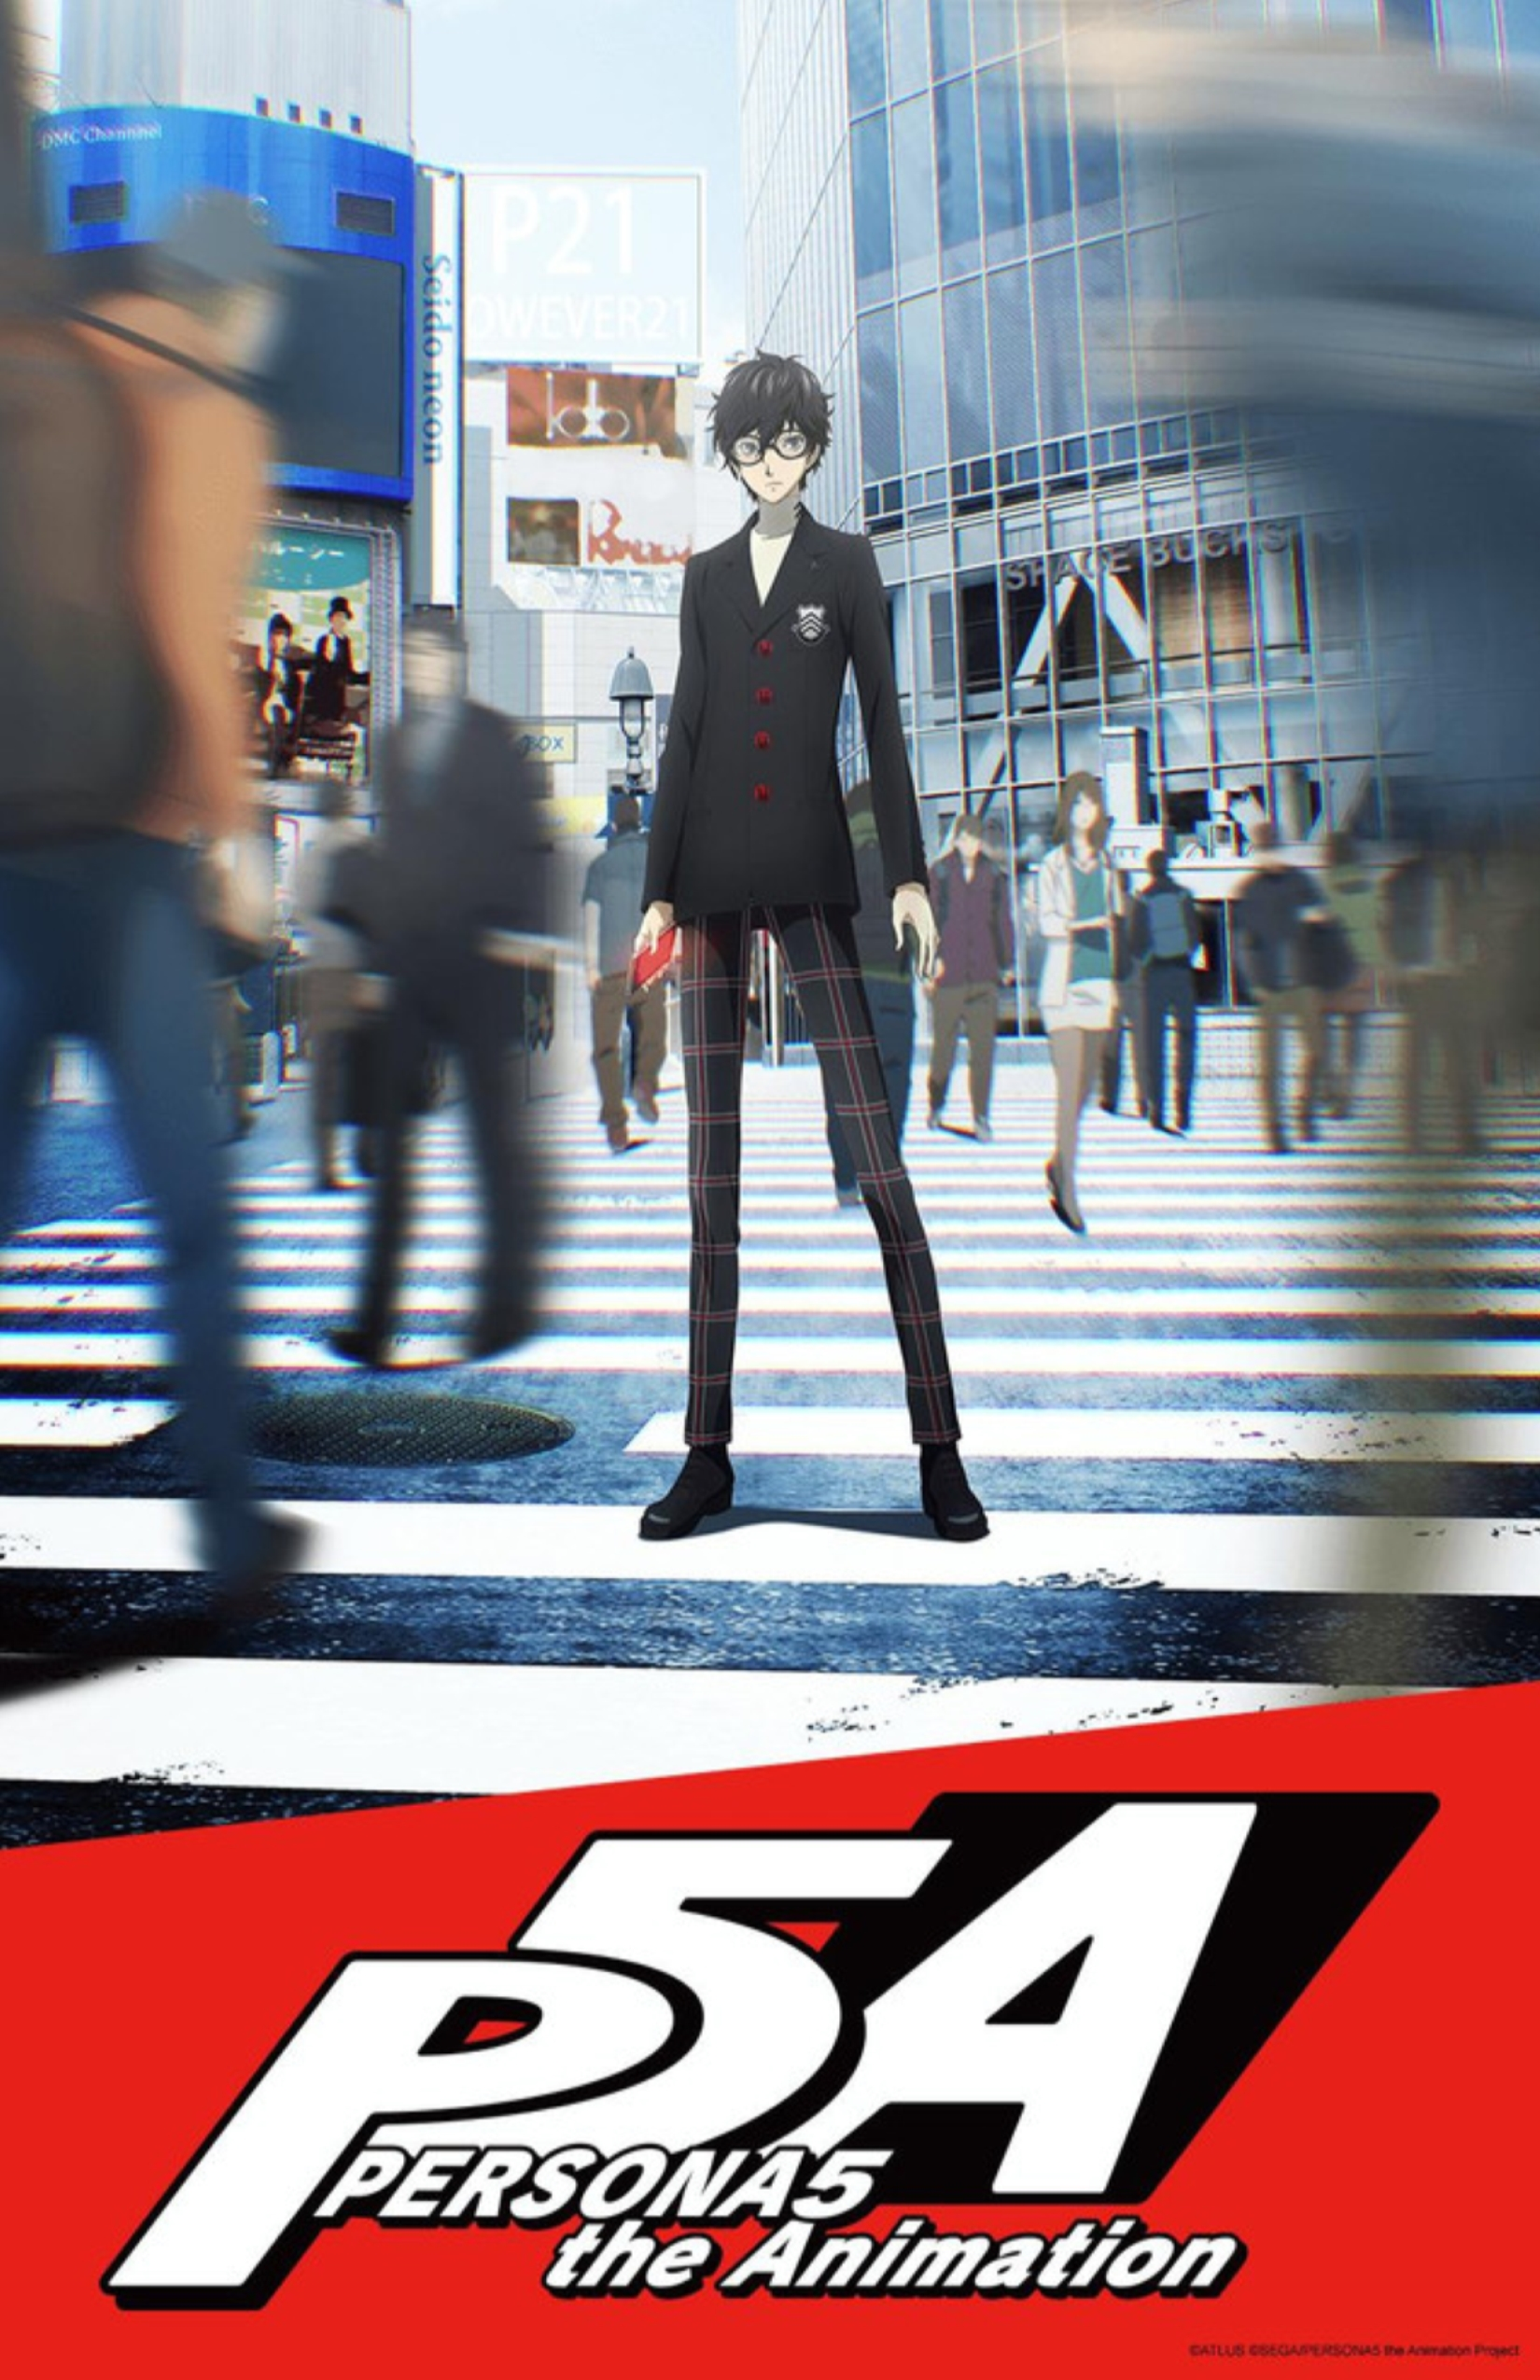 Persona 5: The Animation (2018)